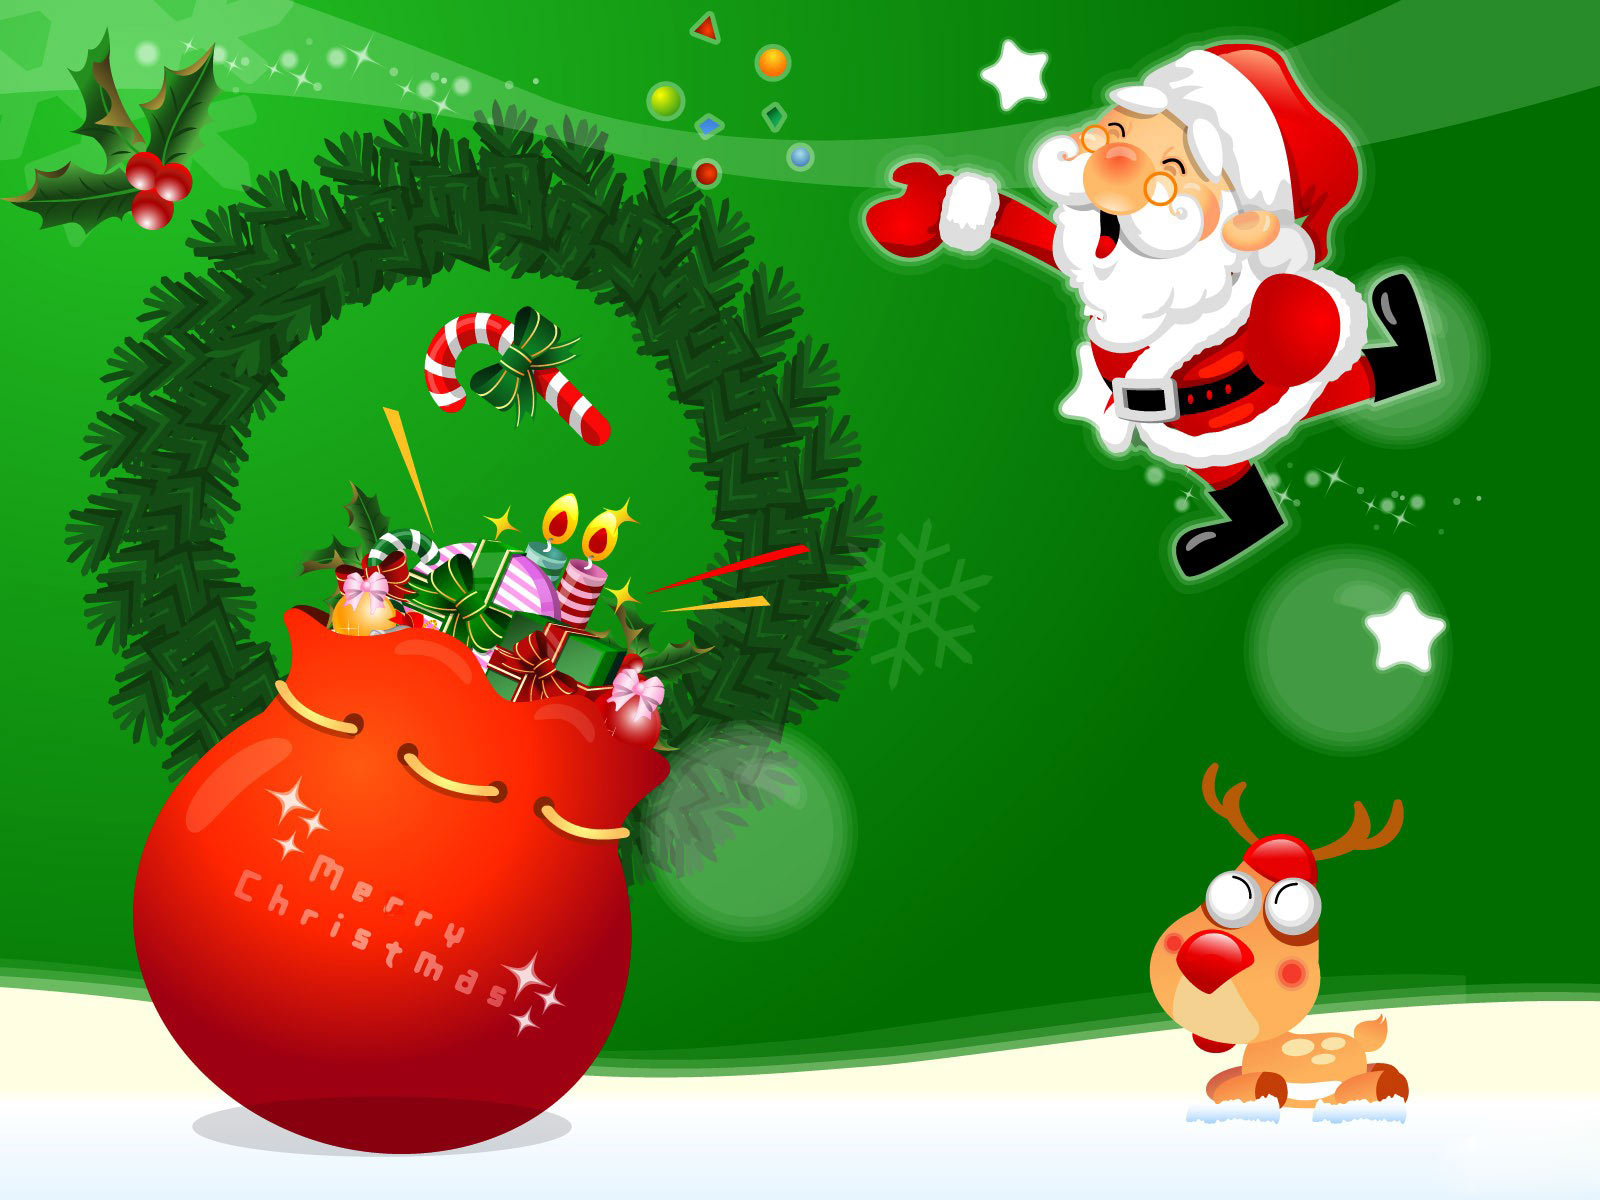 wallpaper christmas wallpapers - photo #27